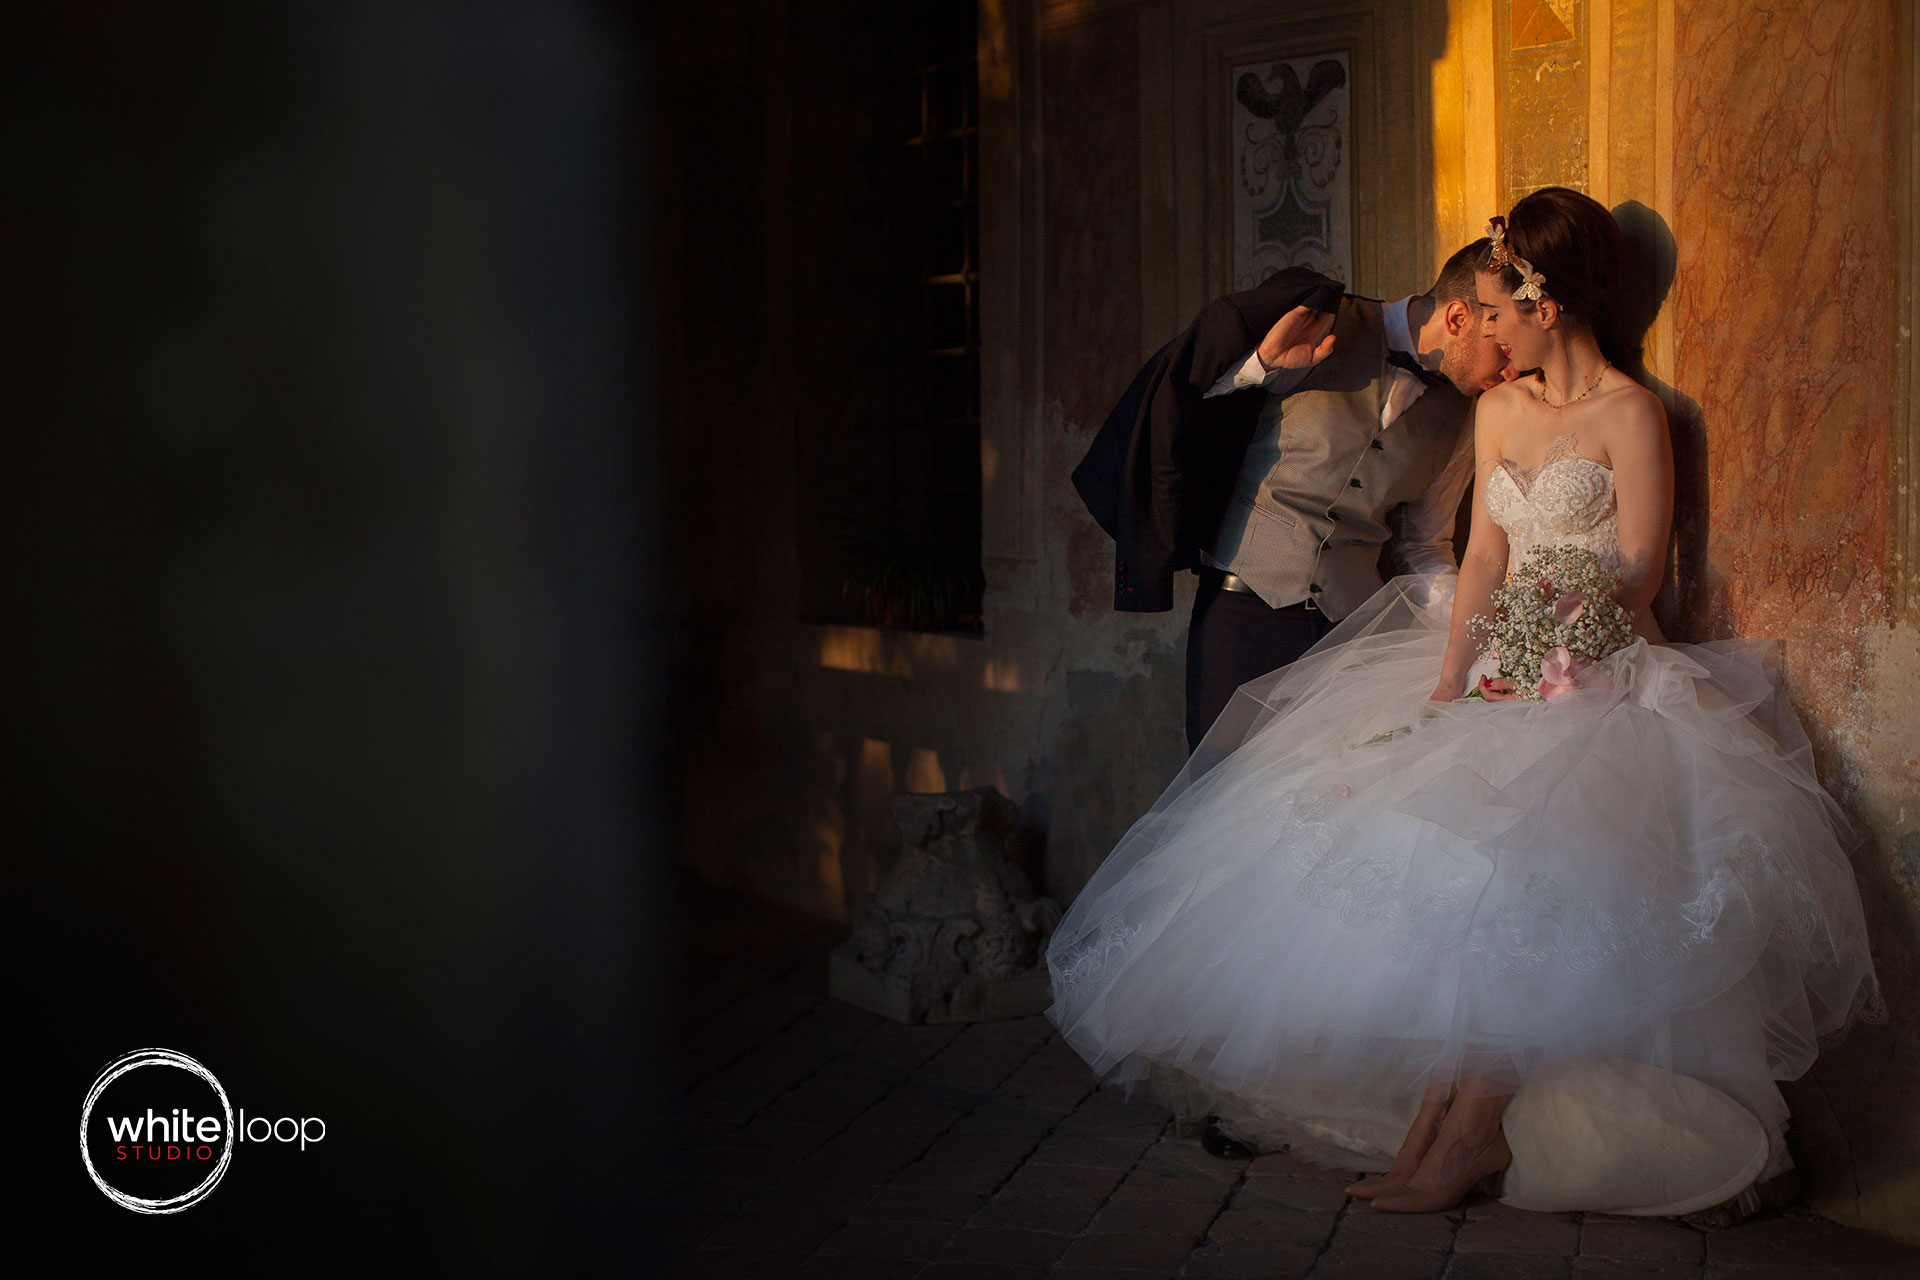 The grooms kissing the bride's shoulder while holding her bouquet of flowers while the light sunset illuminates the couple.